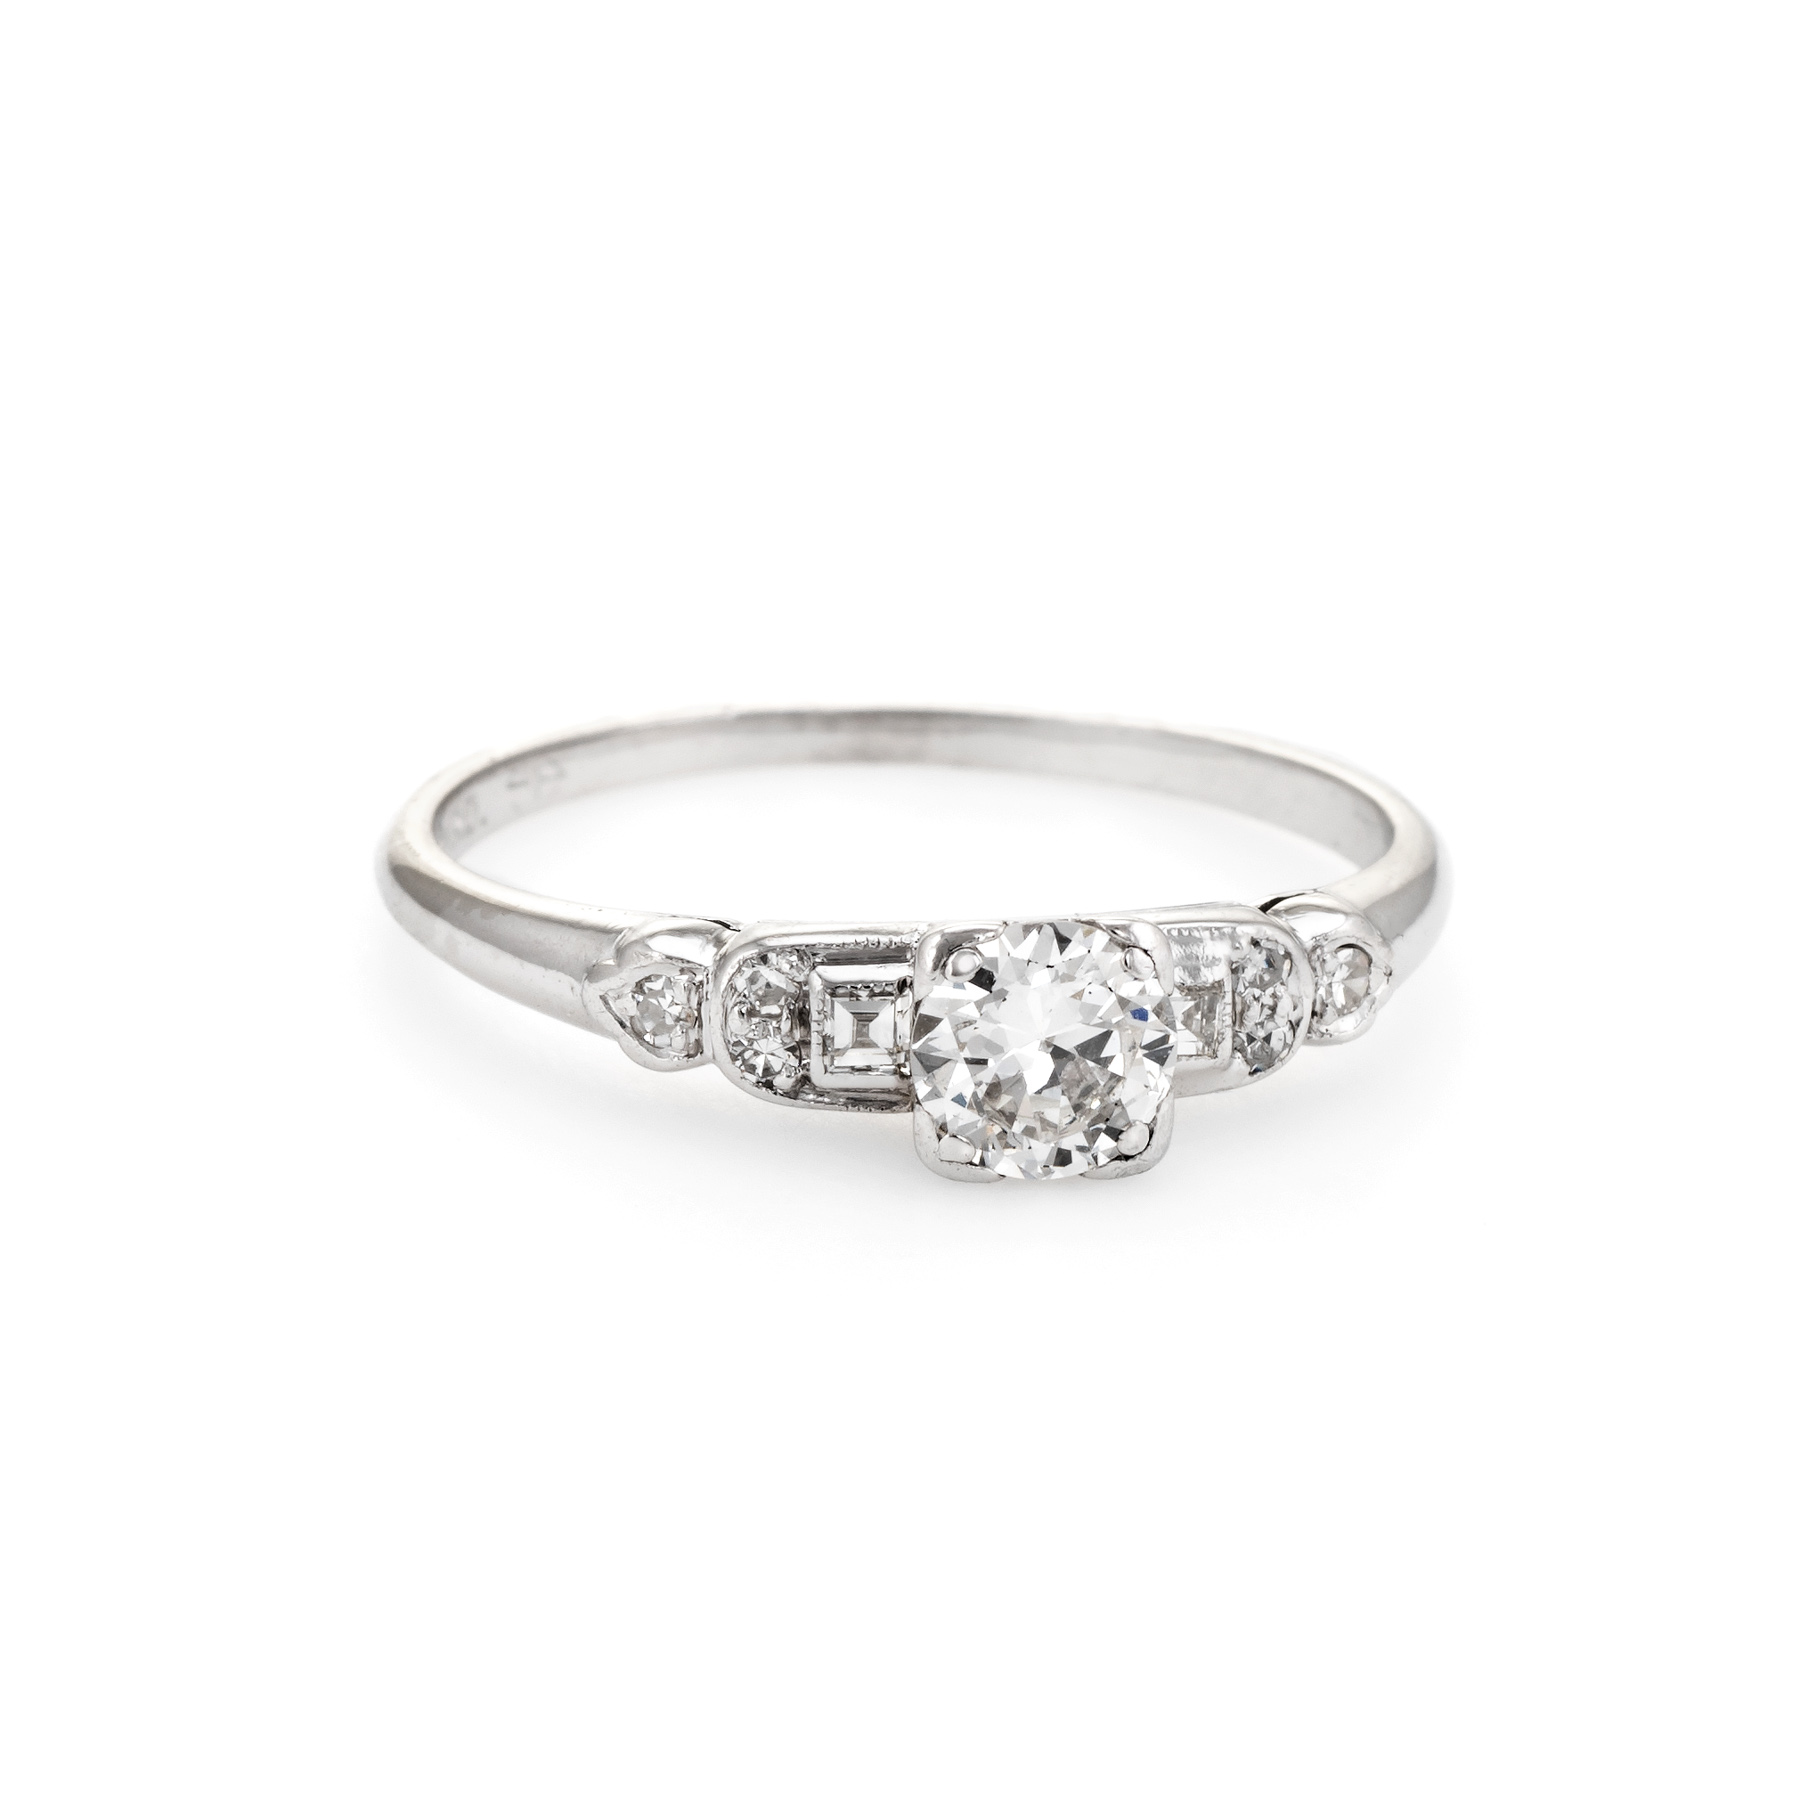 46ea2e41b Details about Antique Deco Diamond Engagement Ring Vintage Platinum Estate  Fine Jewelry 6.25